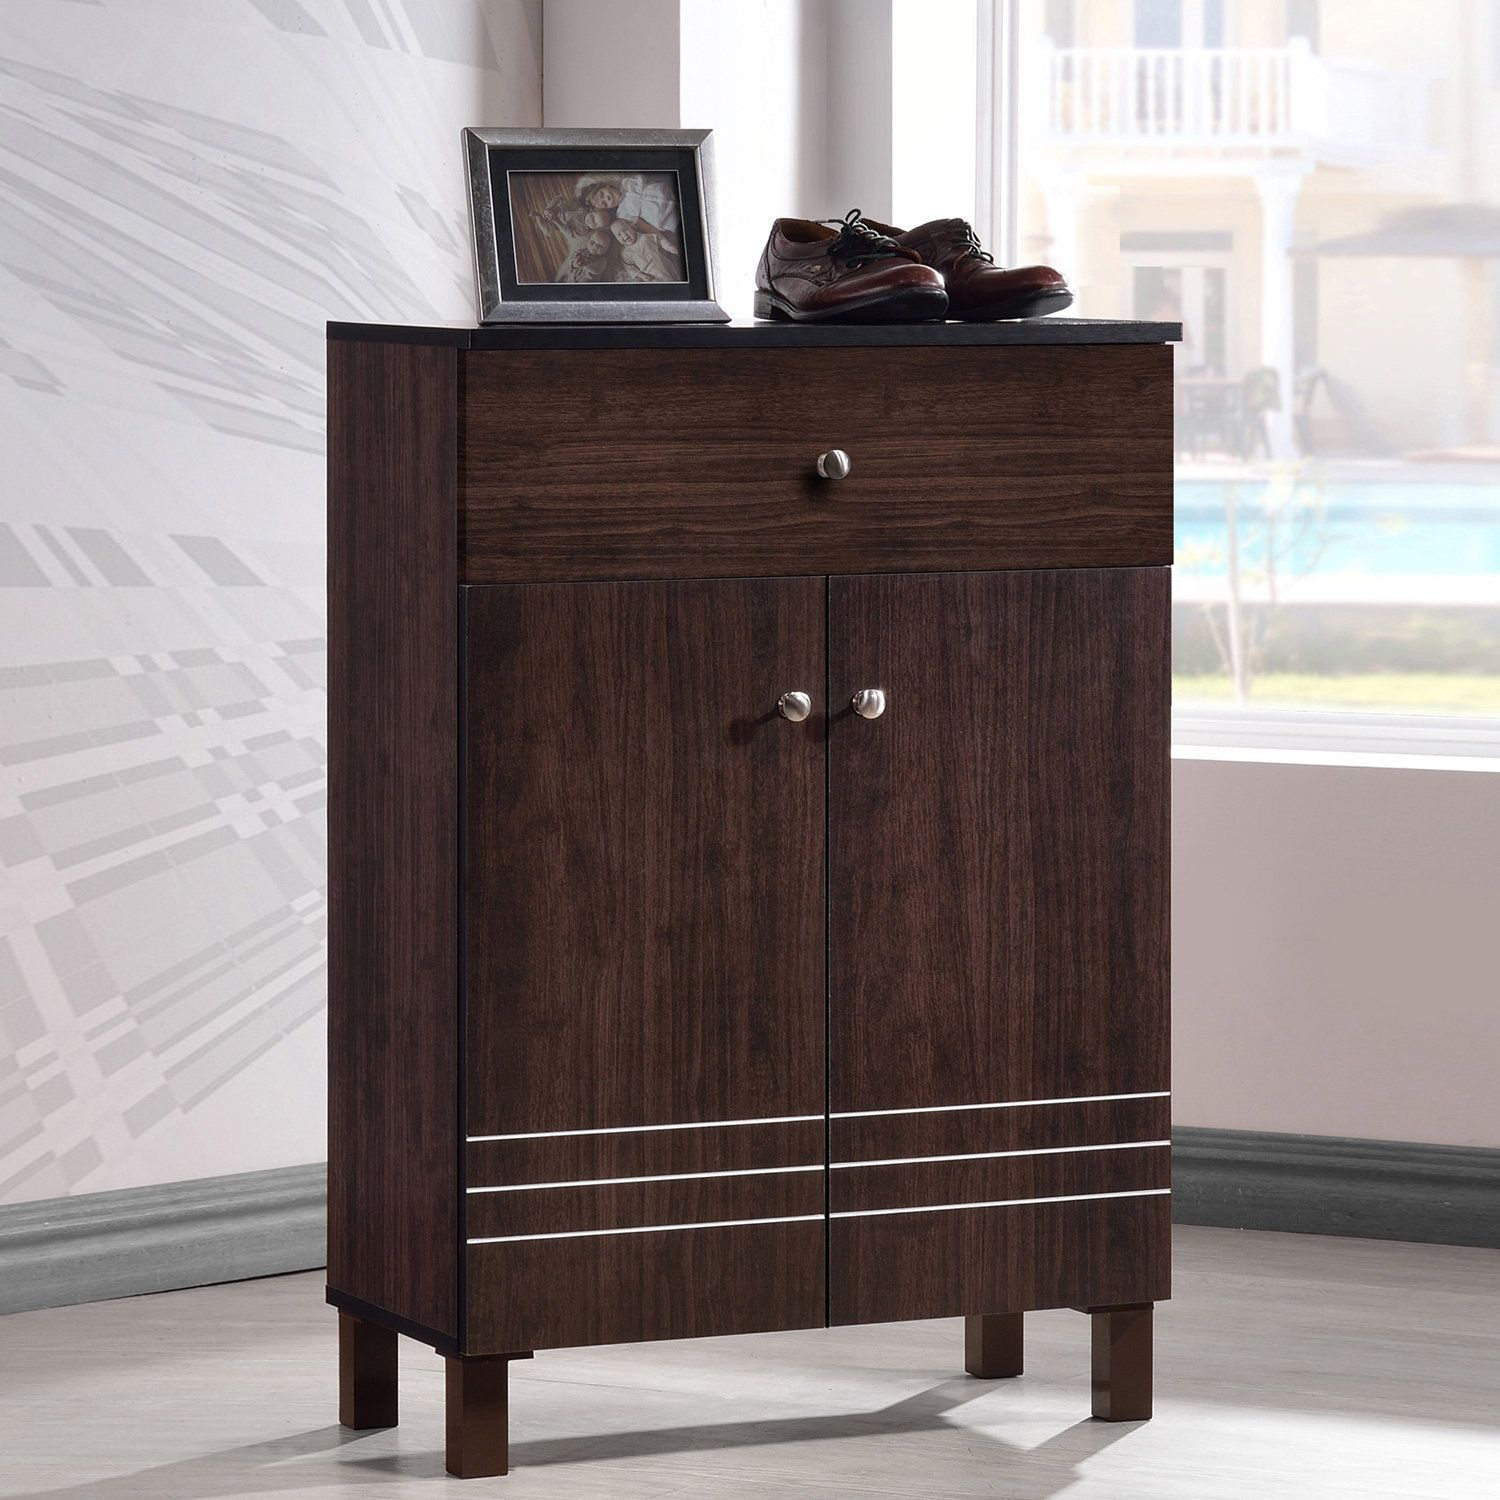 4ea349b6814 Baxton Studio Riker Contemporary Wenge Shoe Cabinet With 2 Doors And 1  Drawer (Shoe Cabinet-Wenge Brown) (Metal)